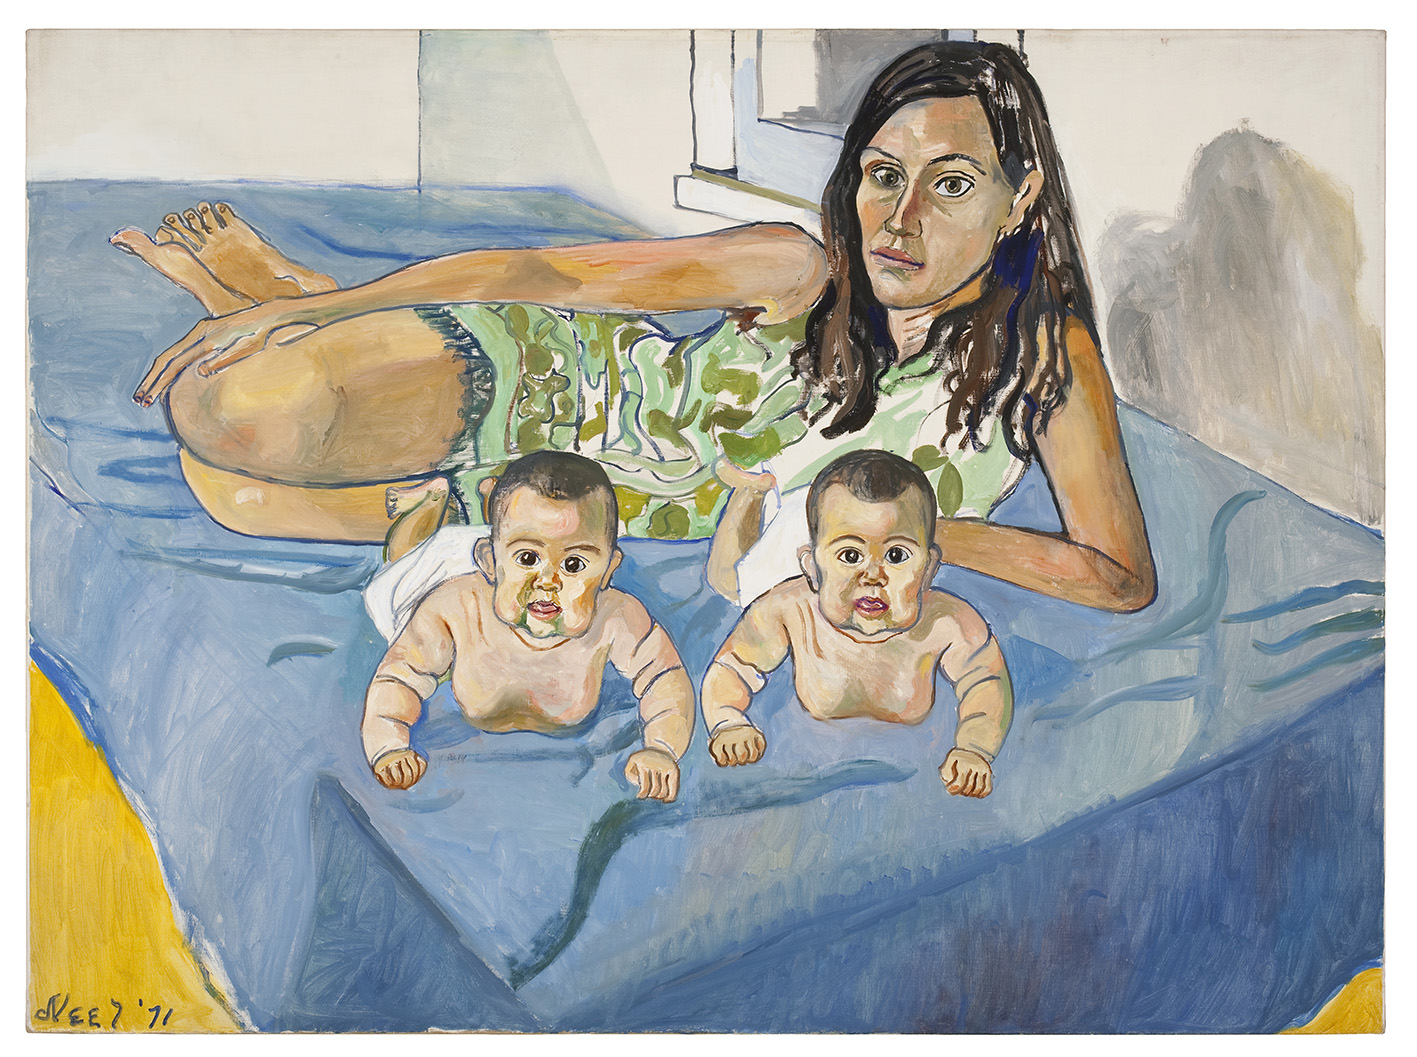 Alice Neel, Nancy and the twins, 1971. © Estate of Alice Neel.